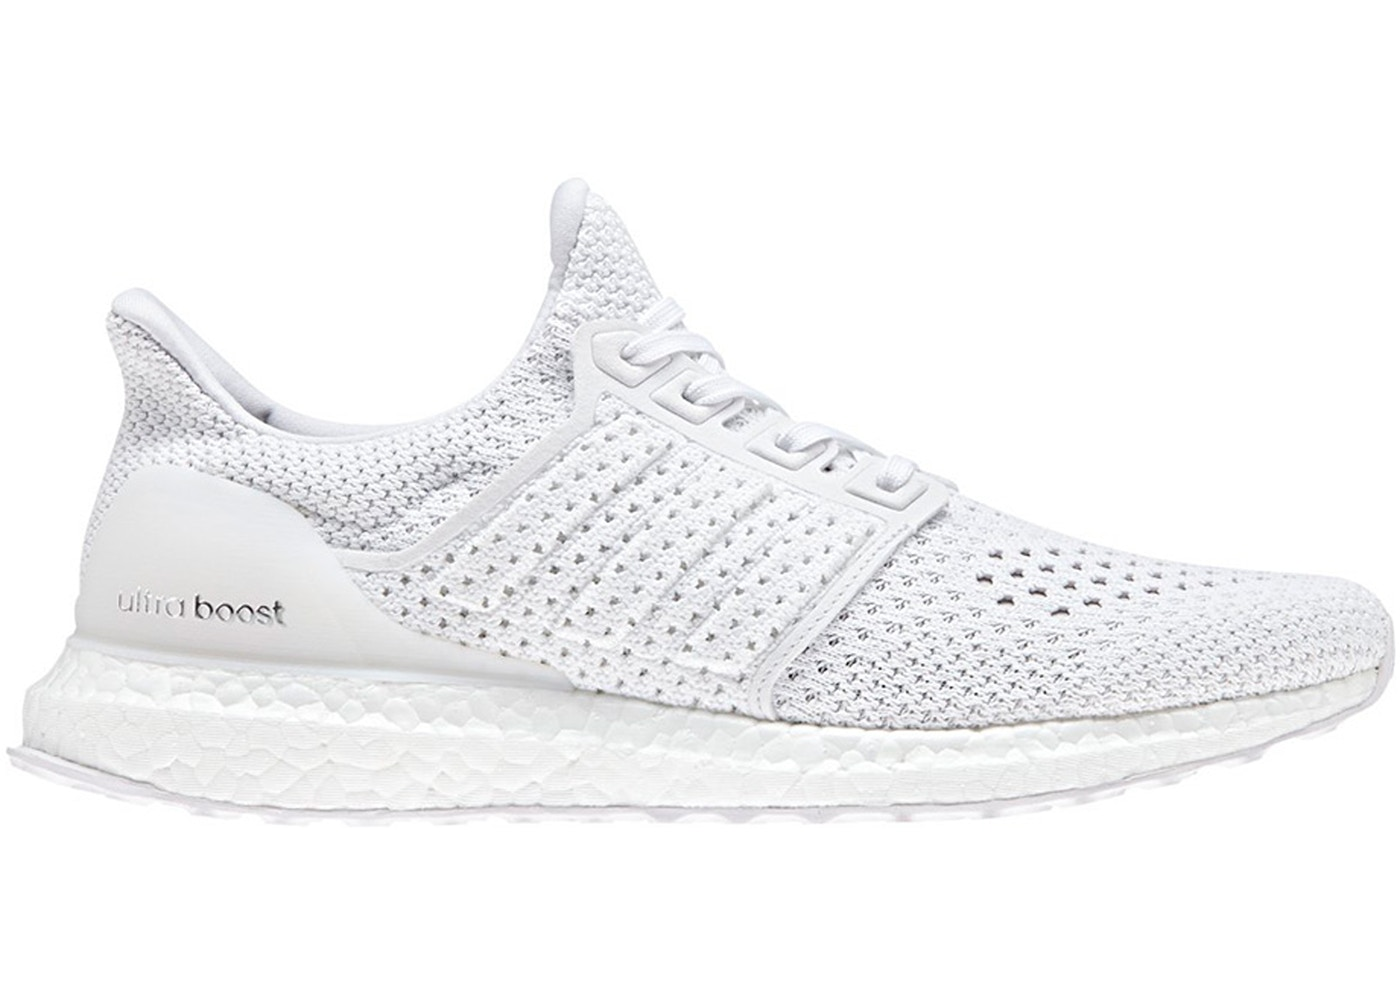 af207858 adidas Ultra Boost Clima White - BY8888